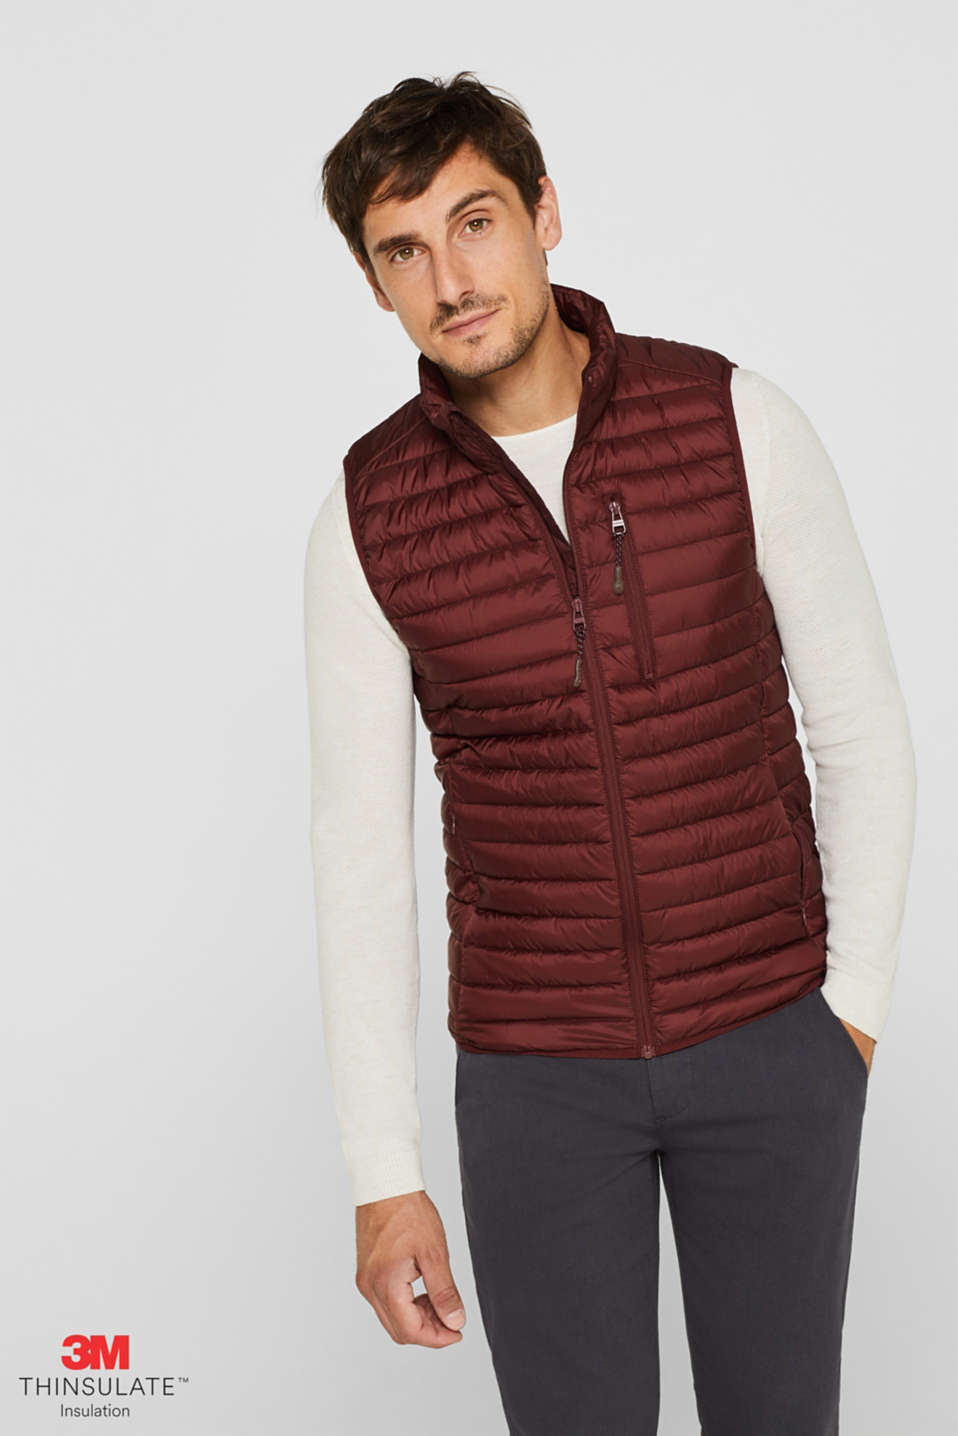 Quilted bodywarmer with 3M® Thinsulate® filling